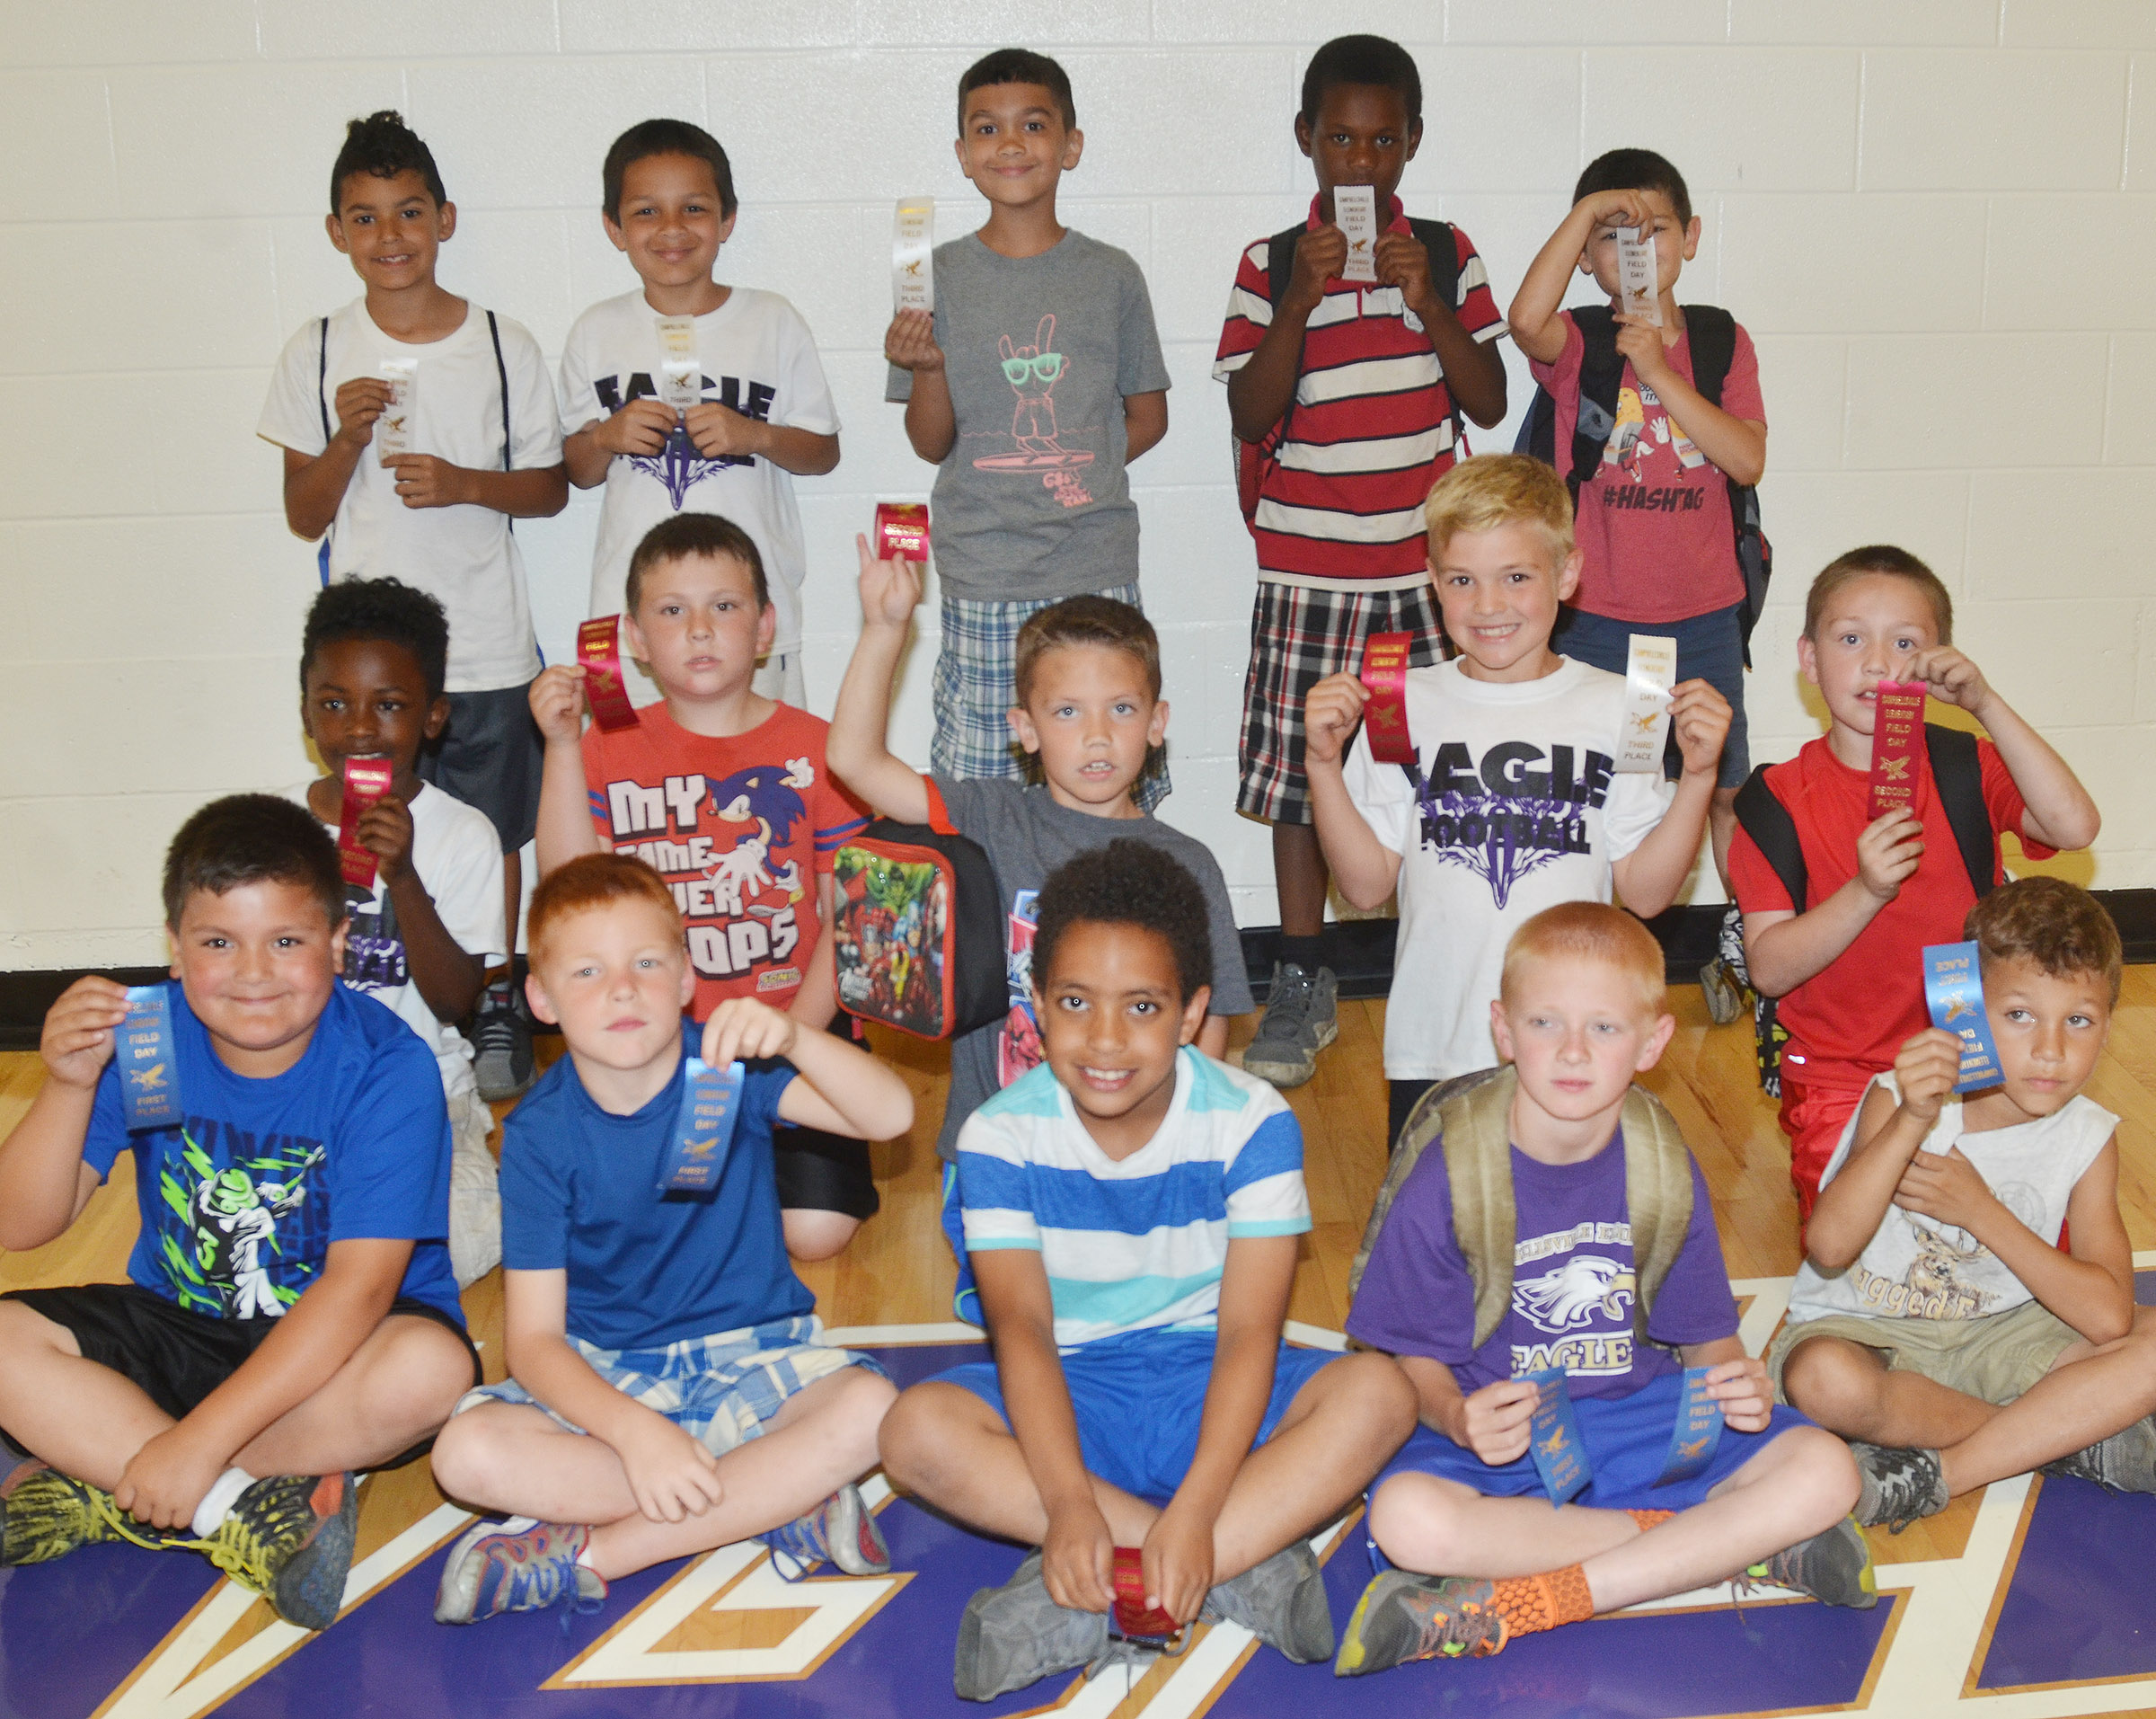 CES first-grade boys who were classroom winners in the 50-yard dash are, from left, front, Eric Mixtega, Carter Wethington, Romeo Goins, Jacob Wethington and Shylan Dunn, who were first place winners. Second row, Drelynn Hollins, Fabrizio Segura, Owen Skaggs, Dax Gray and Jacob Golden, second place winners. Back, Rizzo McKenzie, Makyian Bridgewater, Xadrian Fugate, Lazarick Miller and Henry Martinez, third place winners. Overall, Jacob Wethington was first, Romeo Goins was second and Dax Gray was third.